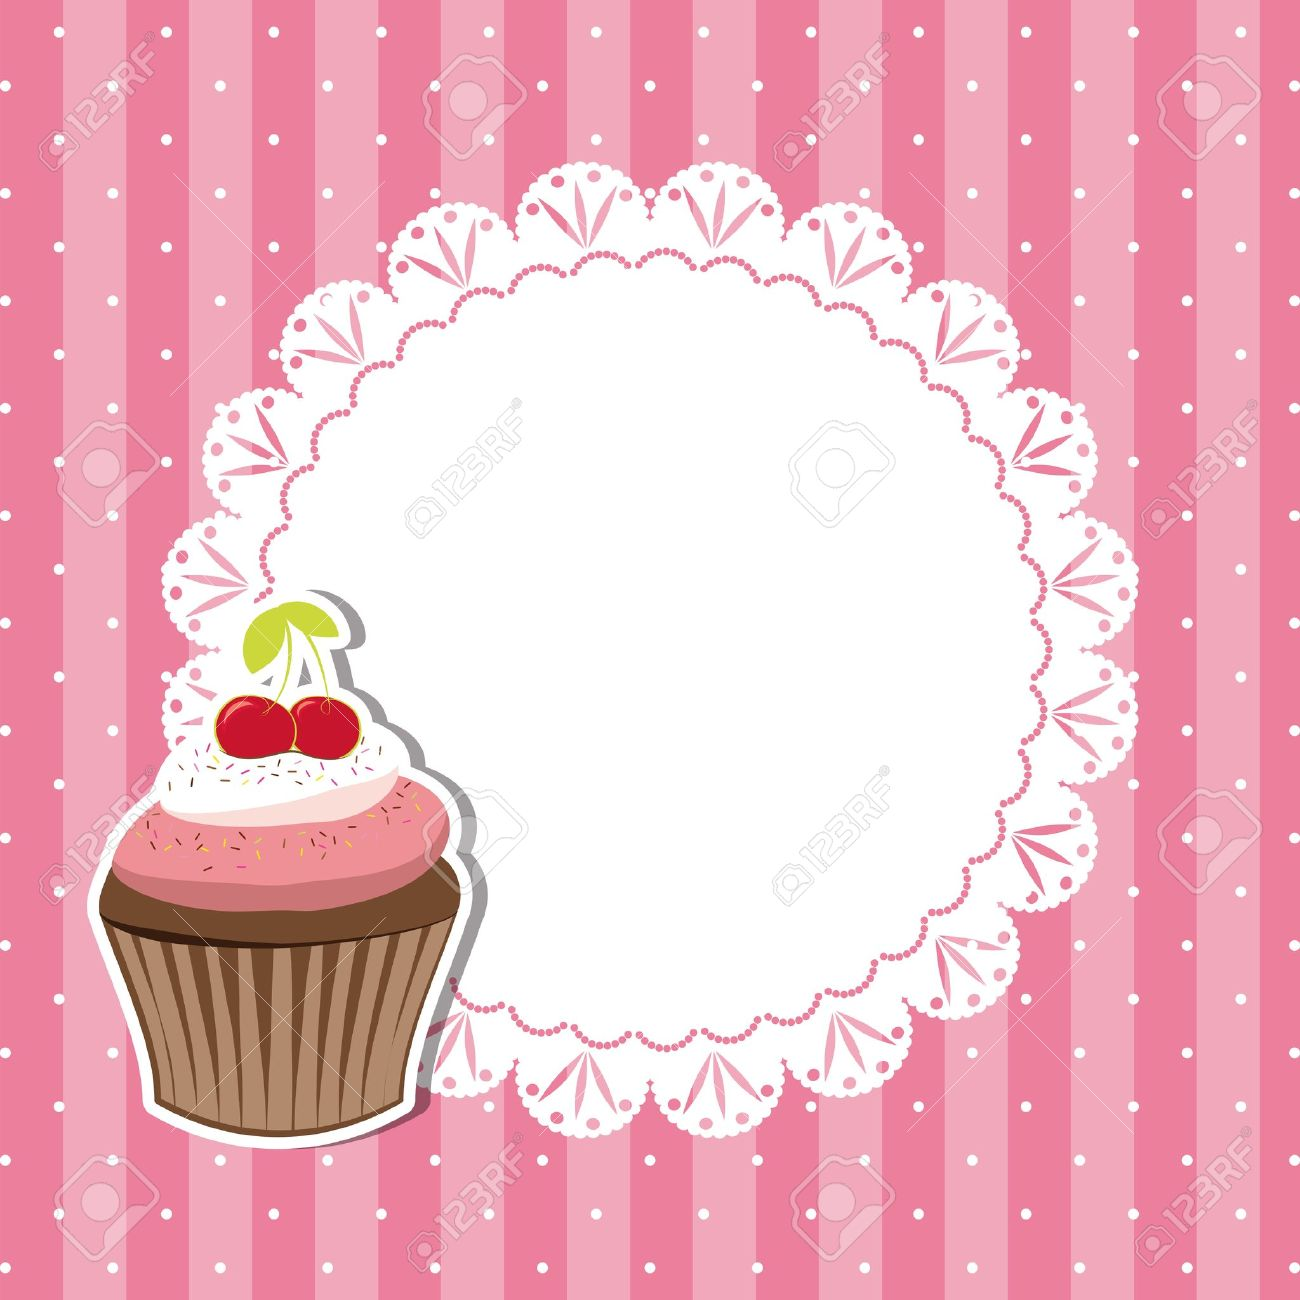 Cherry cupcake invitation card on seamless pattern background Stock Vector - 13051869